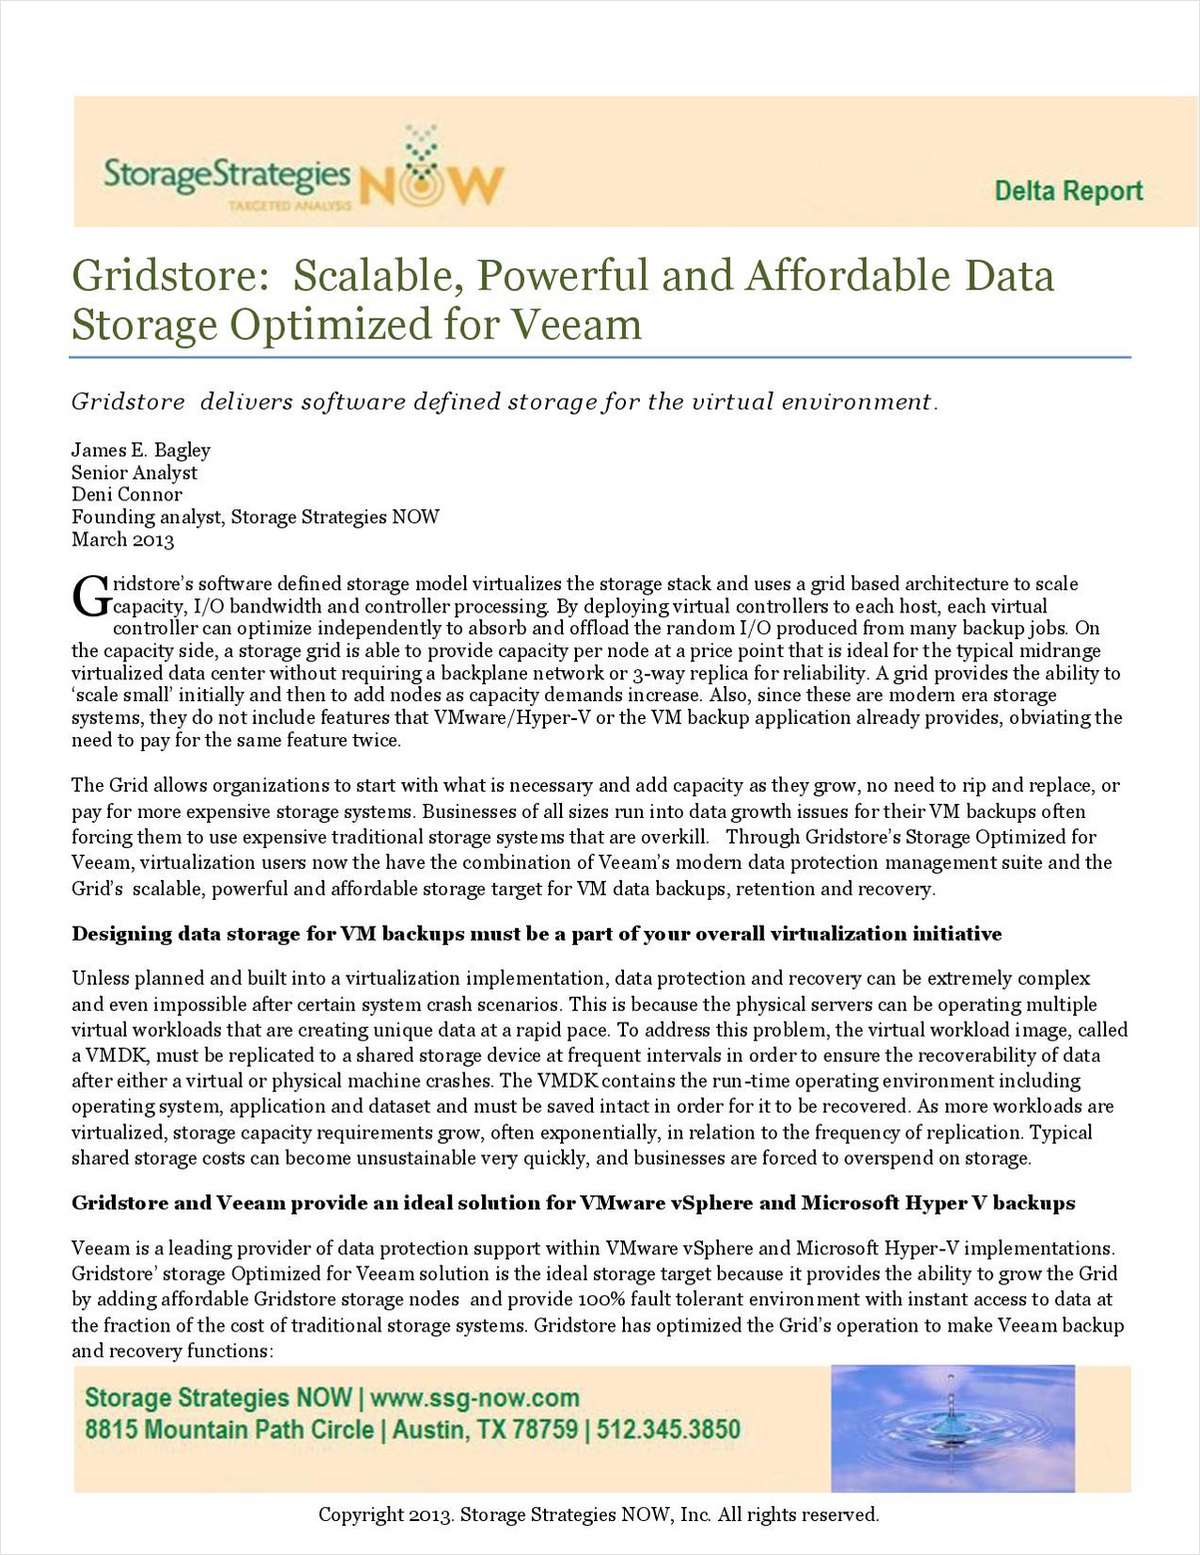 Software defined storage optimized for veeam free gridstore white paper